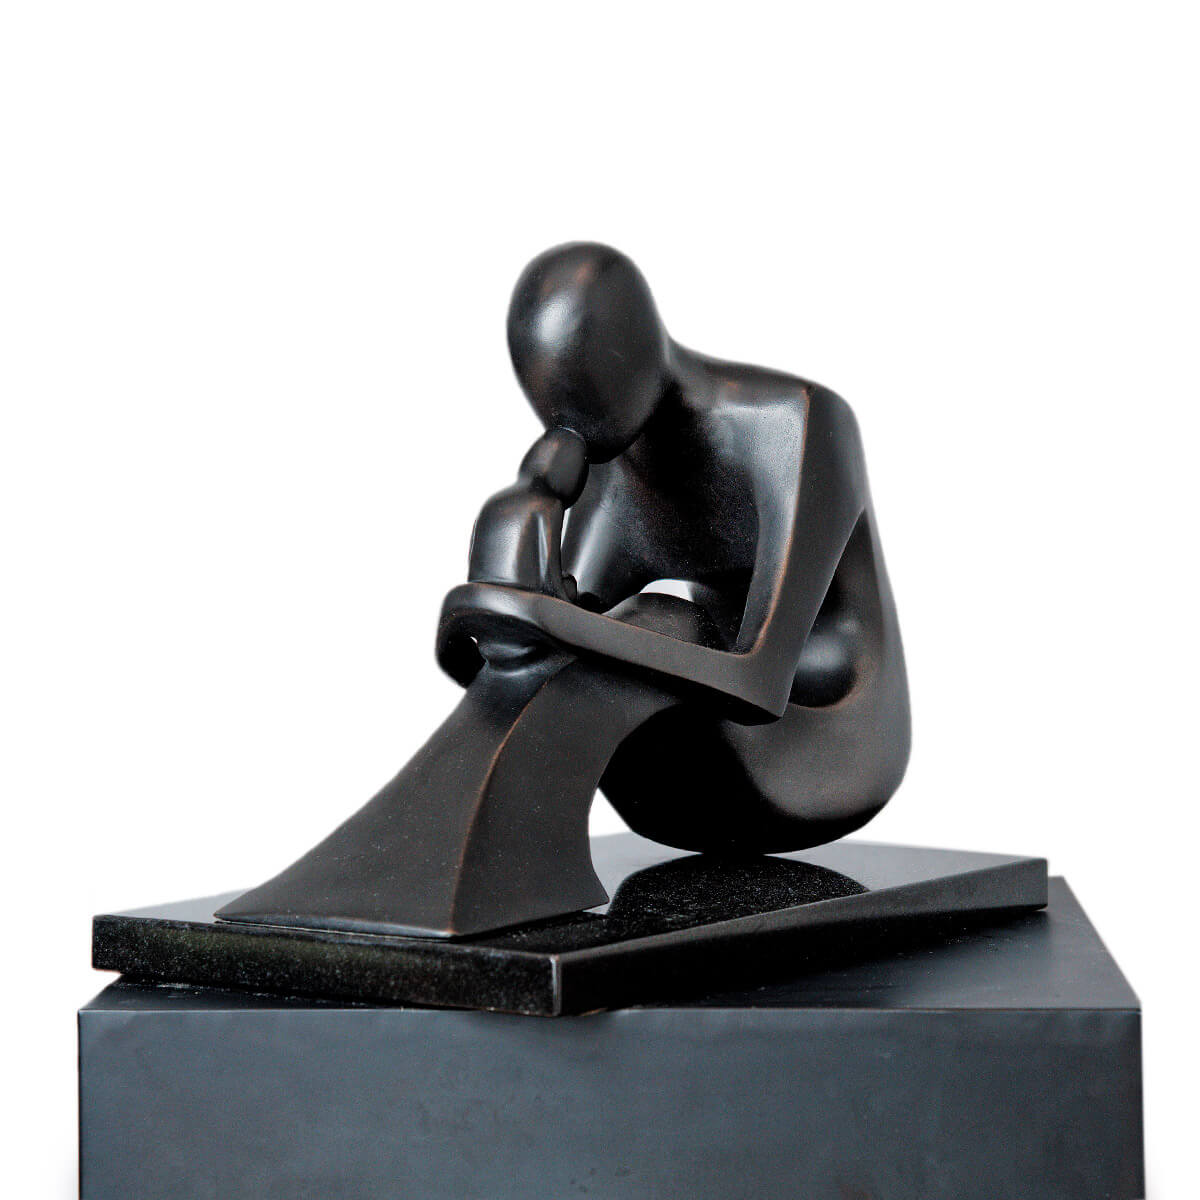 Robert-Helle-Sculpture-Gallery-Mother-Child-2a-1200x1200